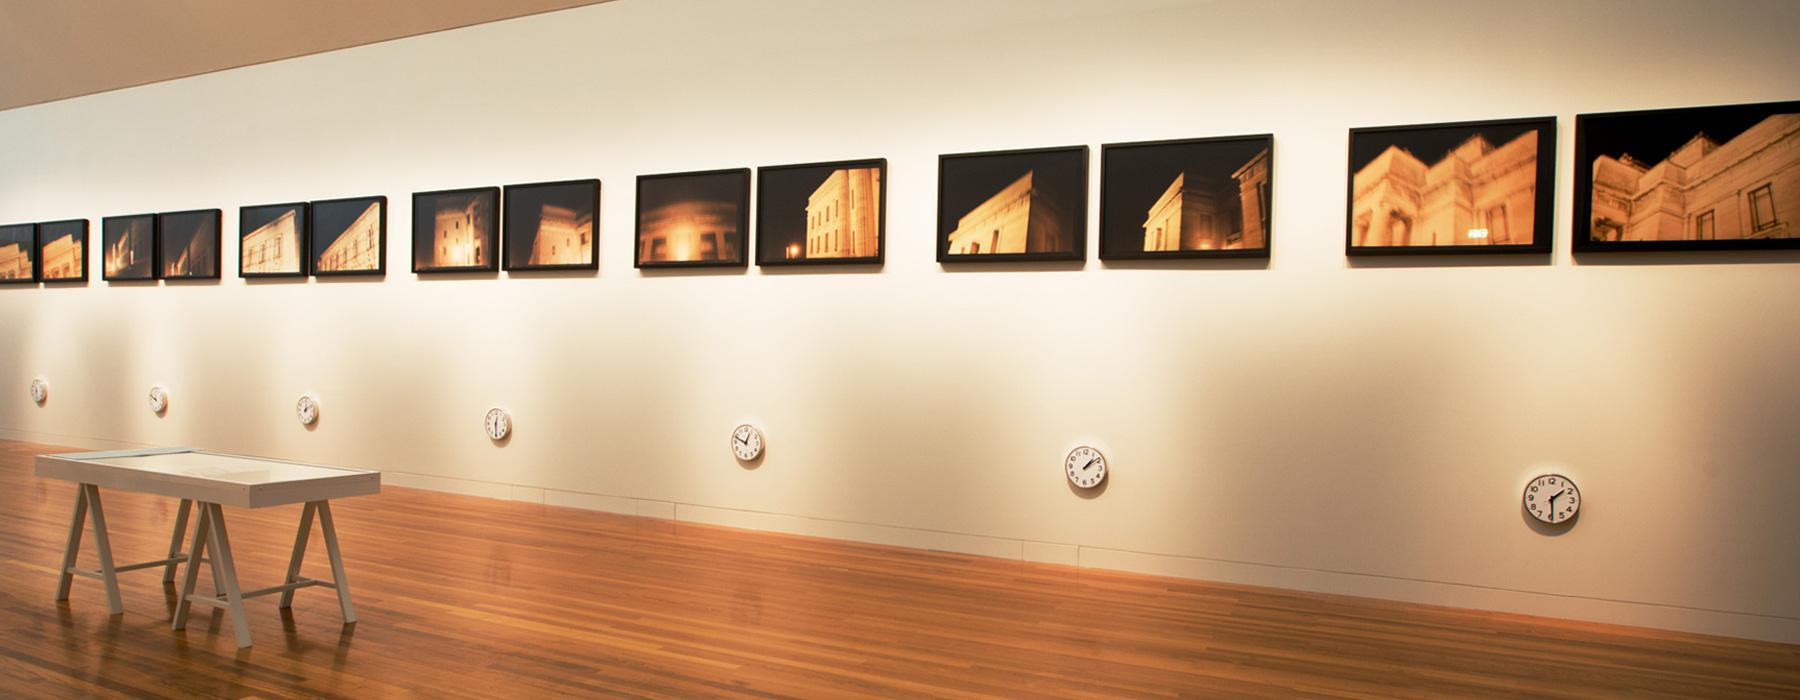 National Services Te Paerangi - help and support for museums and galleries